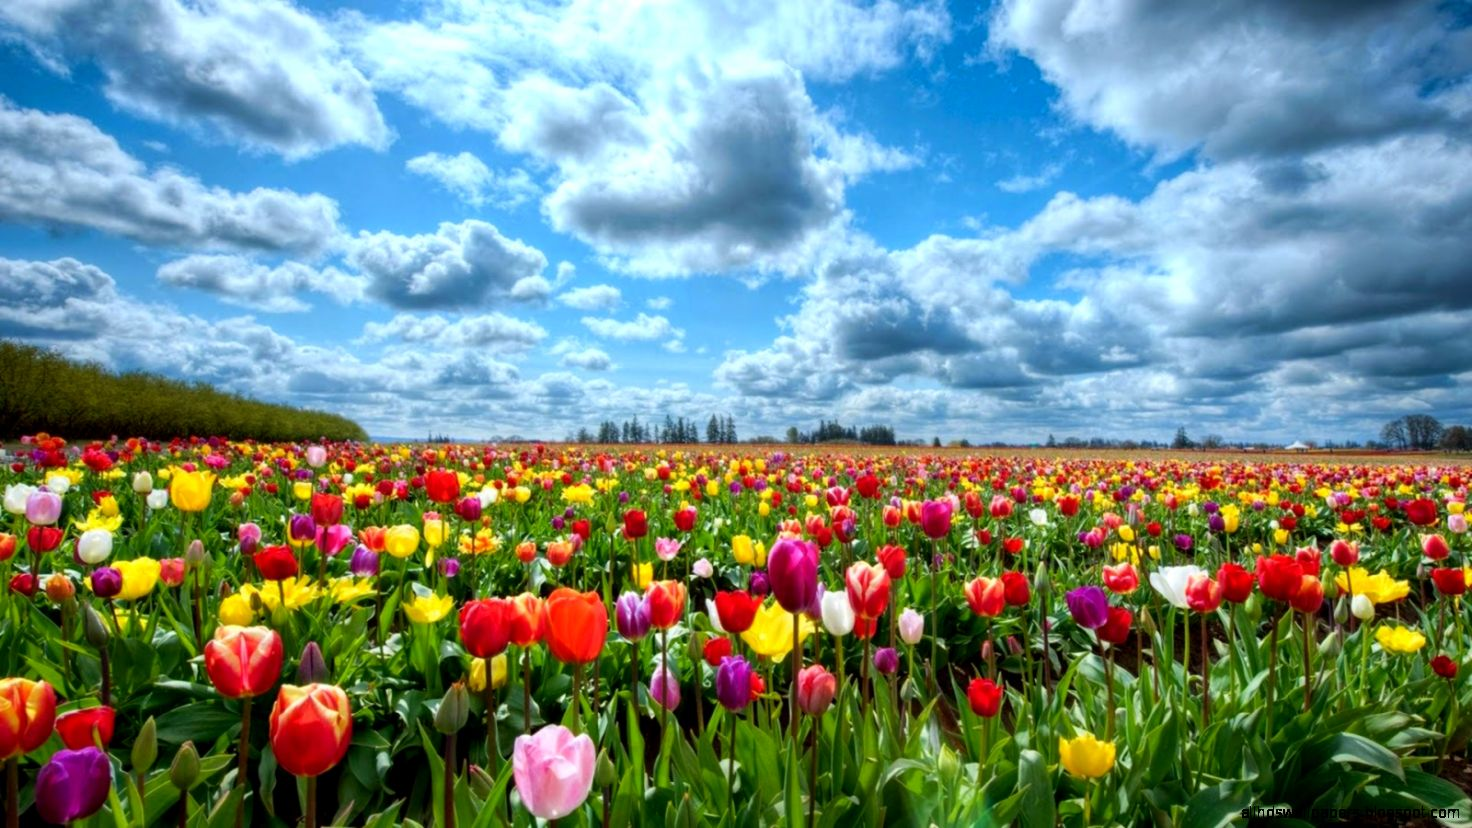 Beautiful Flower Wallpapers in HD   HD Wallpapers   High Quality